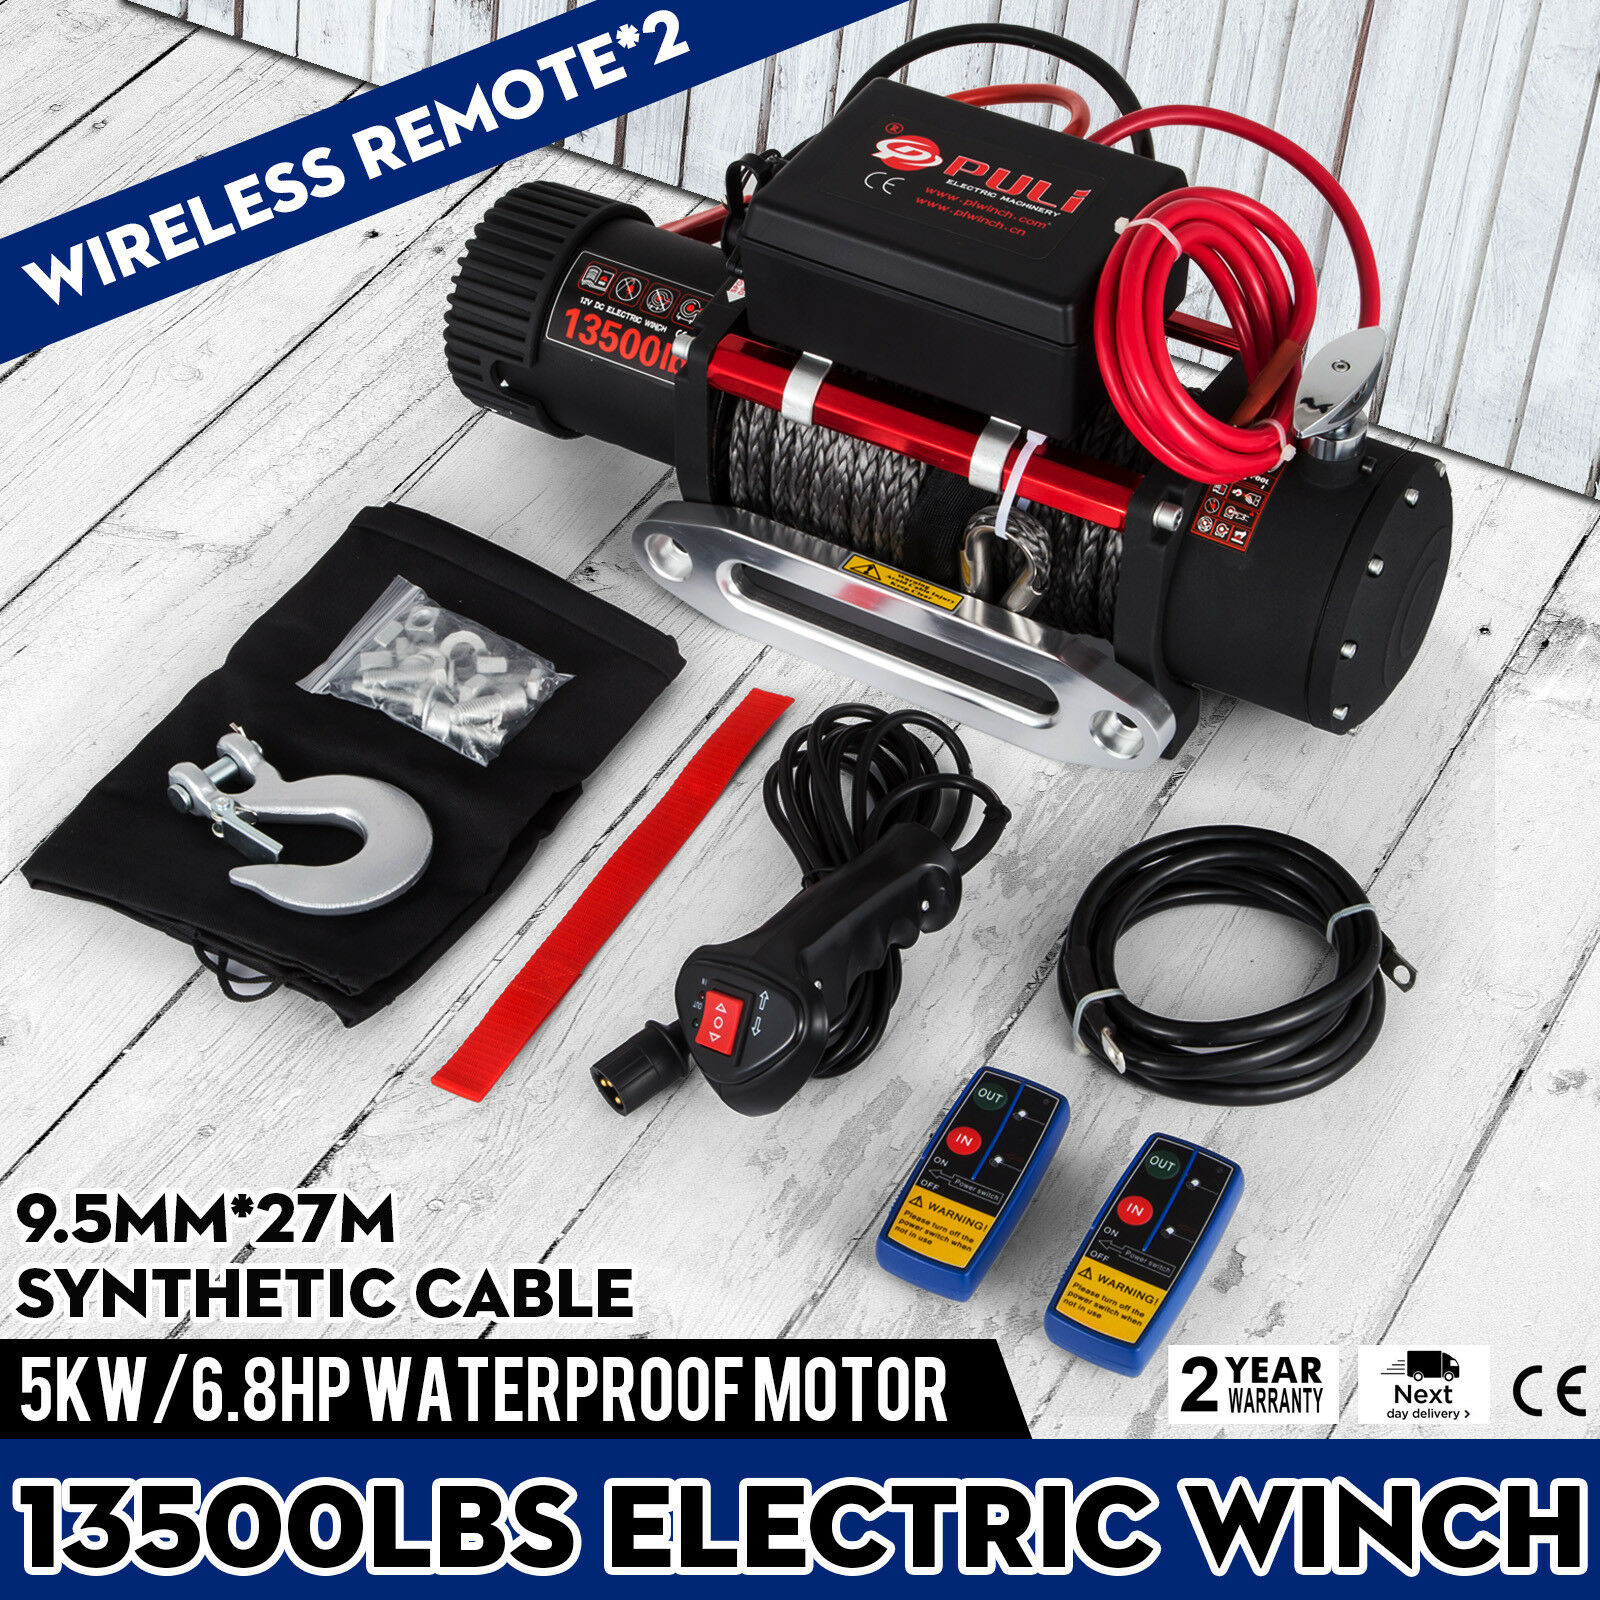 12V Electric Winch 3000LBS,4000LBS,6000LBS,13500LBS Gear Train Roller Recovery[13500LBS Synthetic Rope]